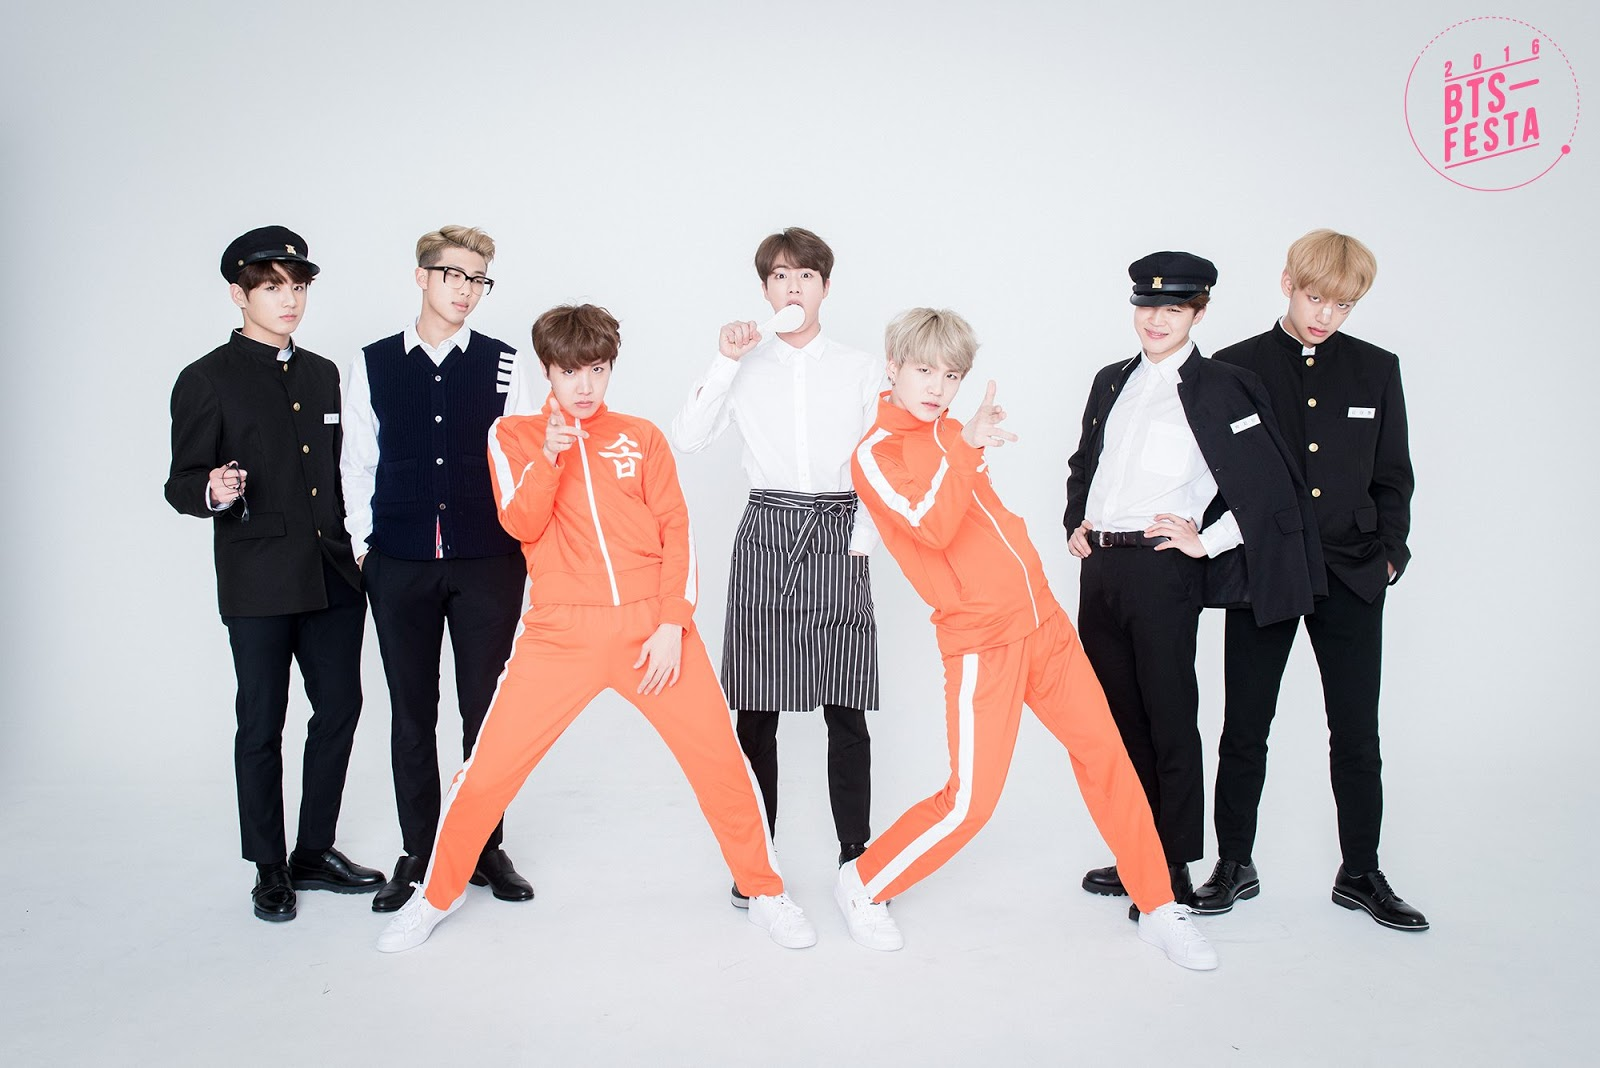 BTS-FESTA-2016-BTS-3rd-Anniversary-Real-Family-Picture-19